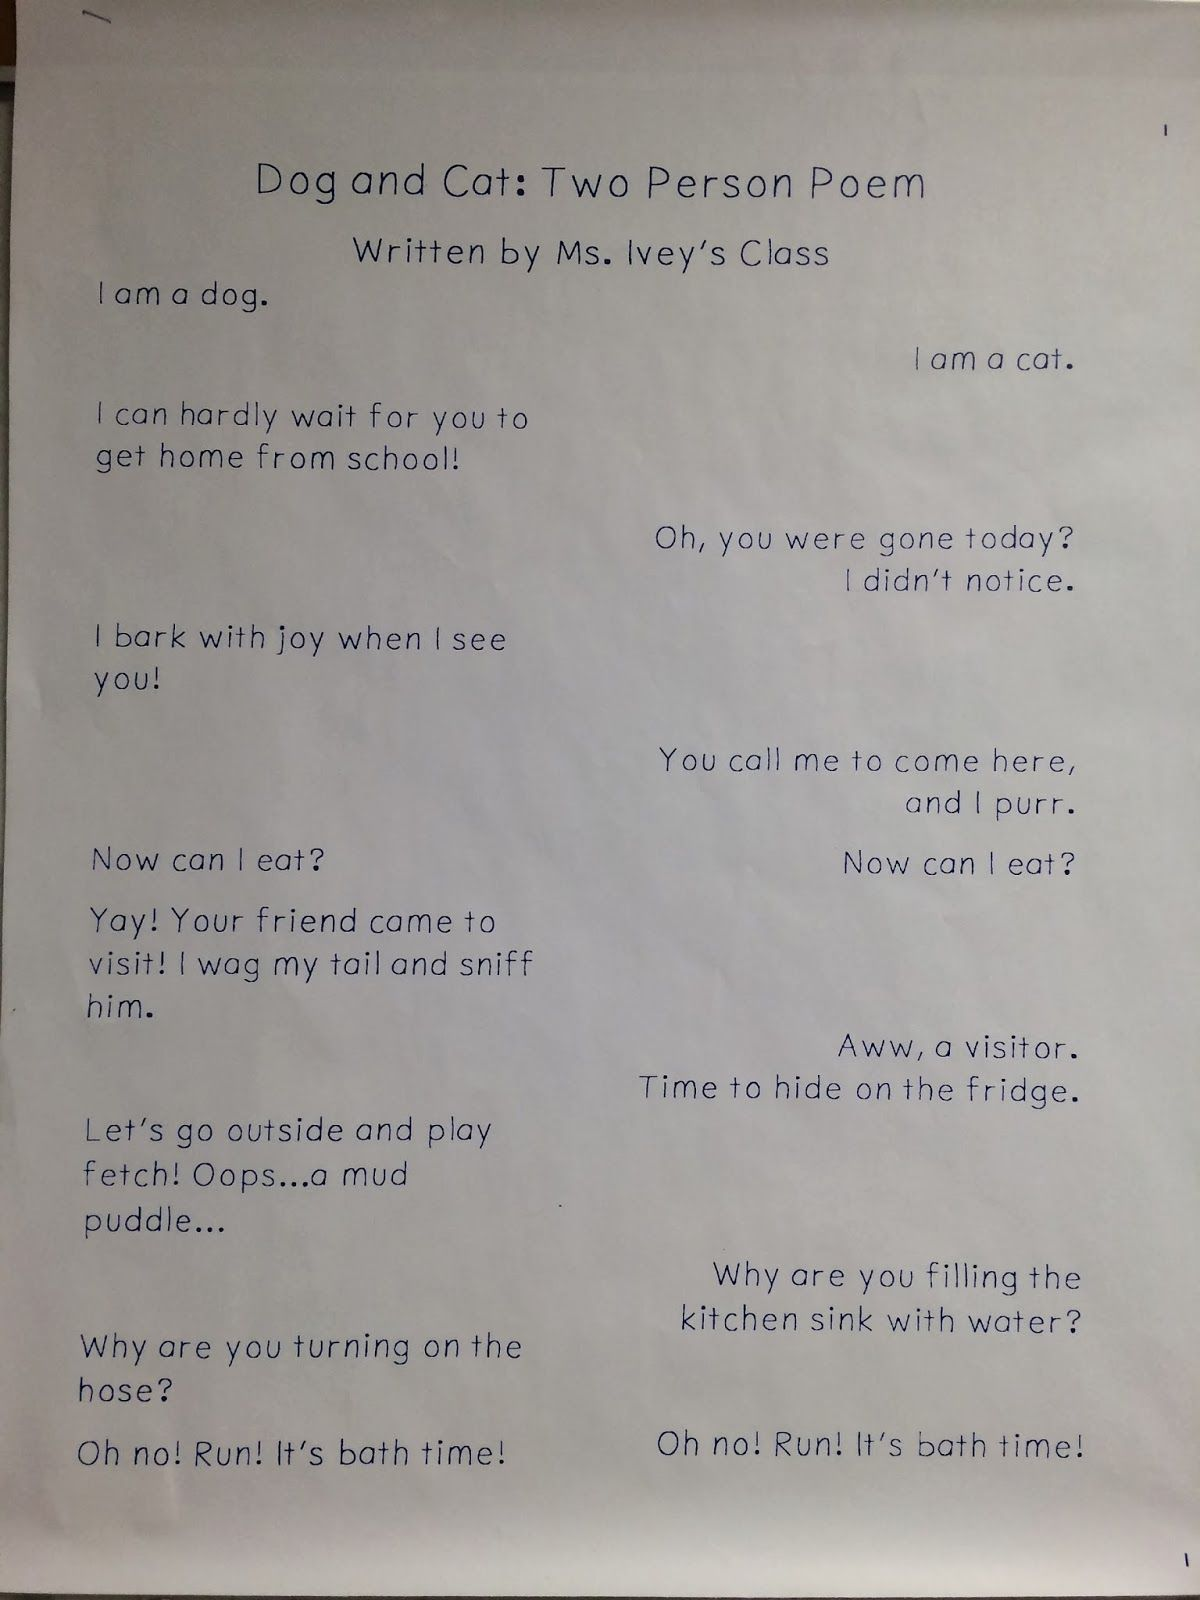 This teacher is using two voice poems